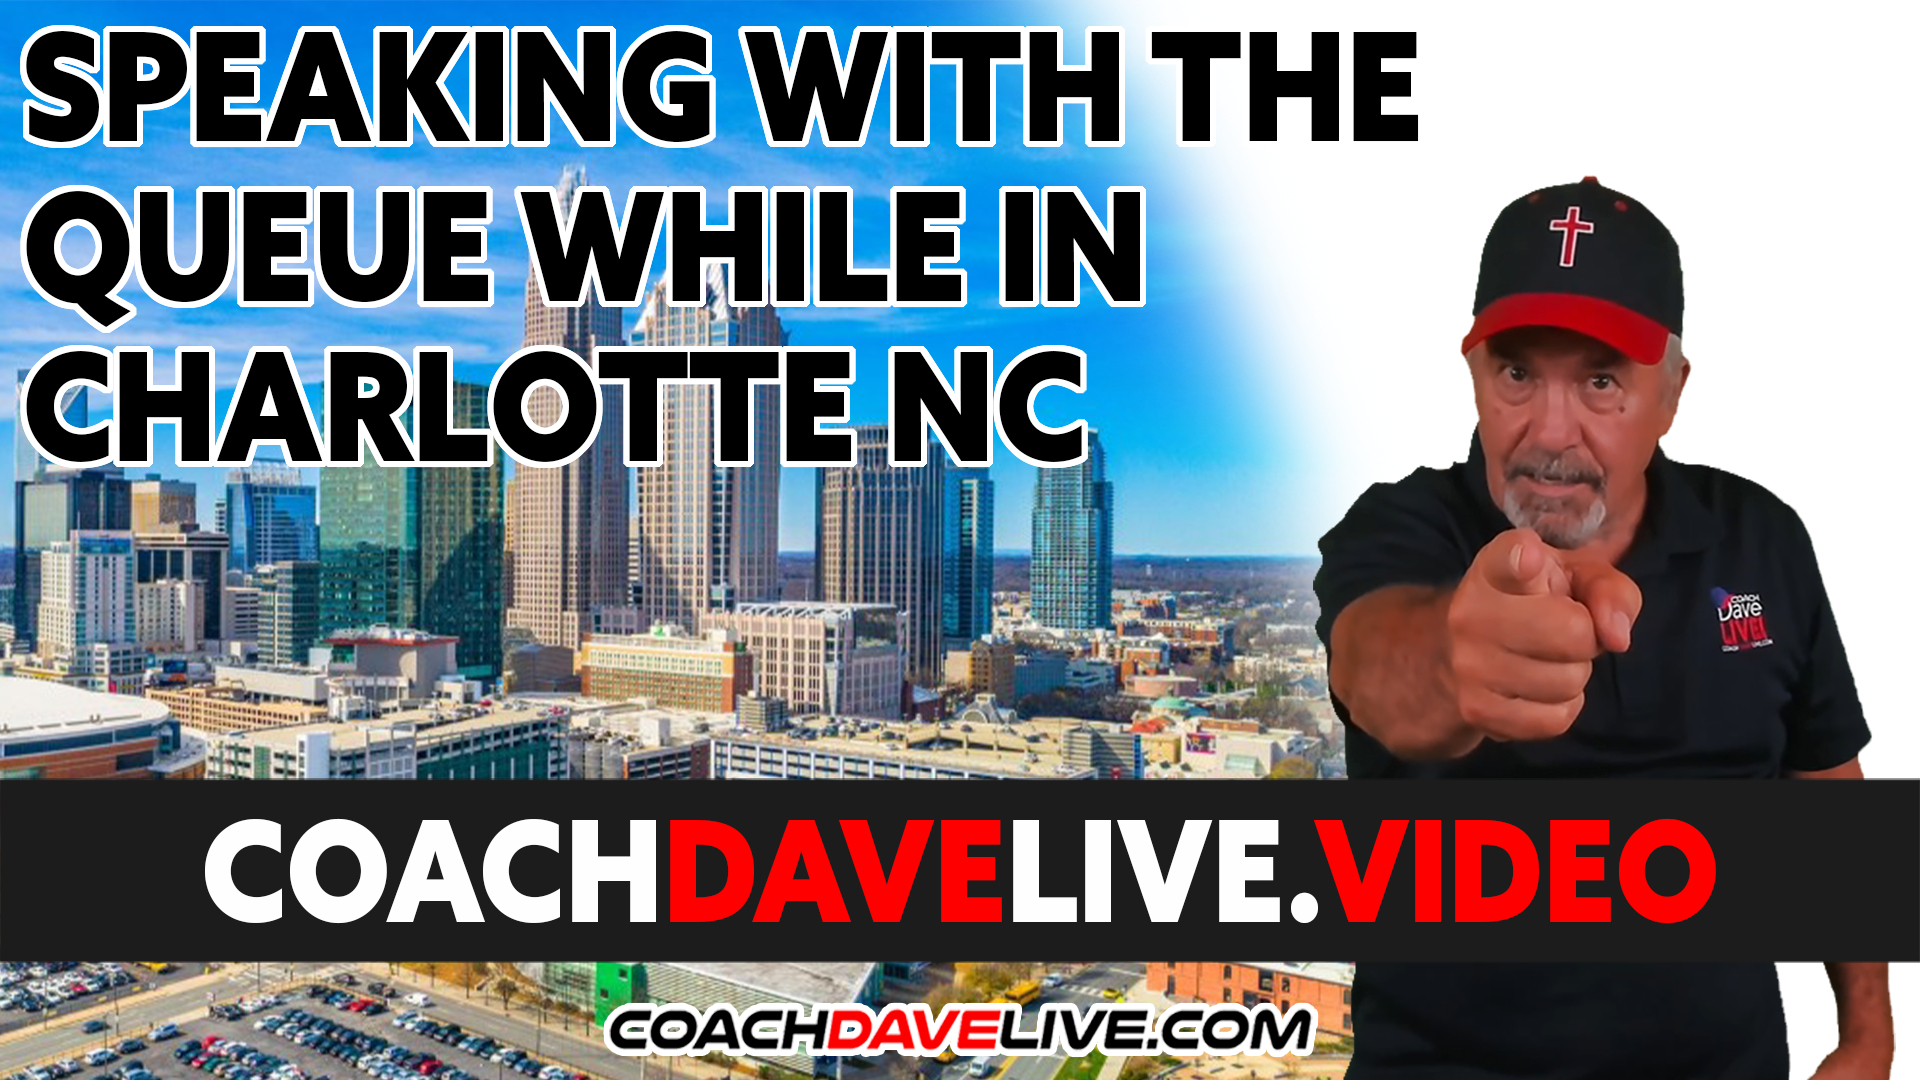 Coach Dave LIVE | 9-14-2021 | SPEAKING WITH THE QUEUE WHILE IN CHARLOTTE NC